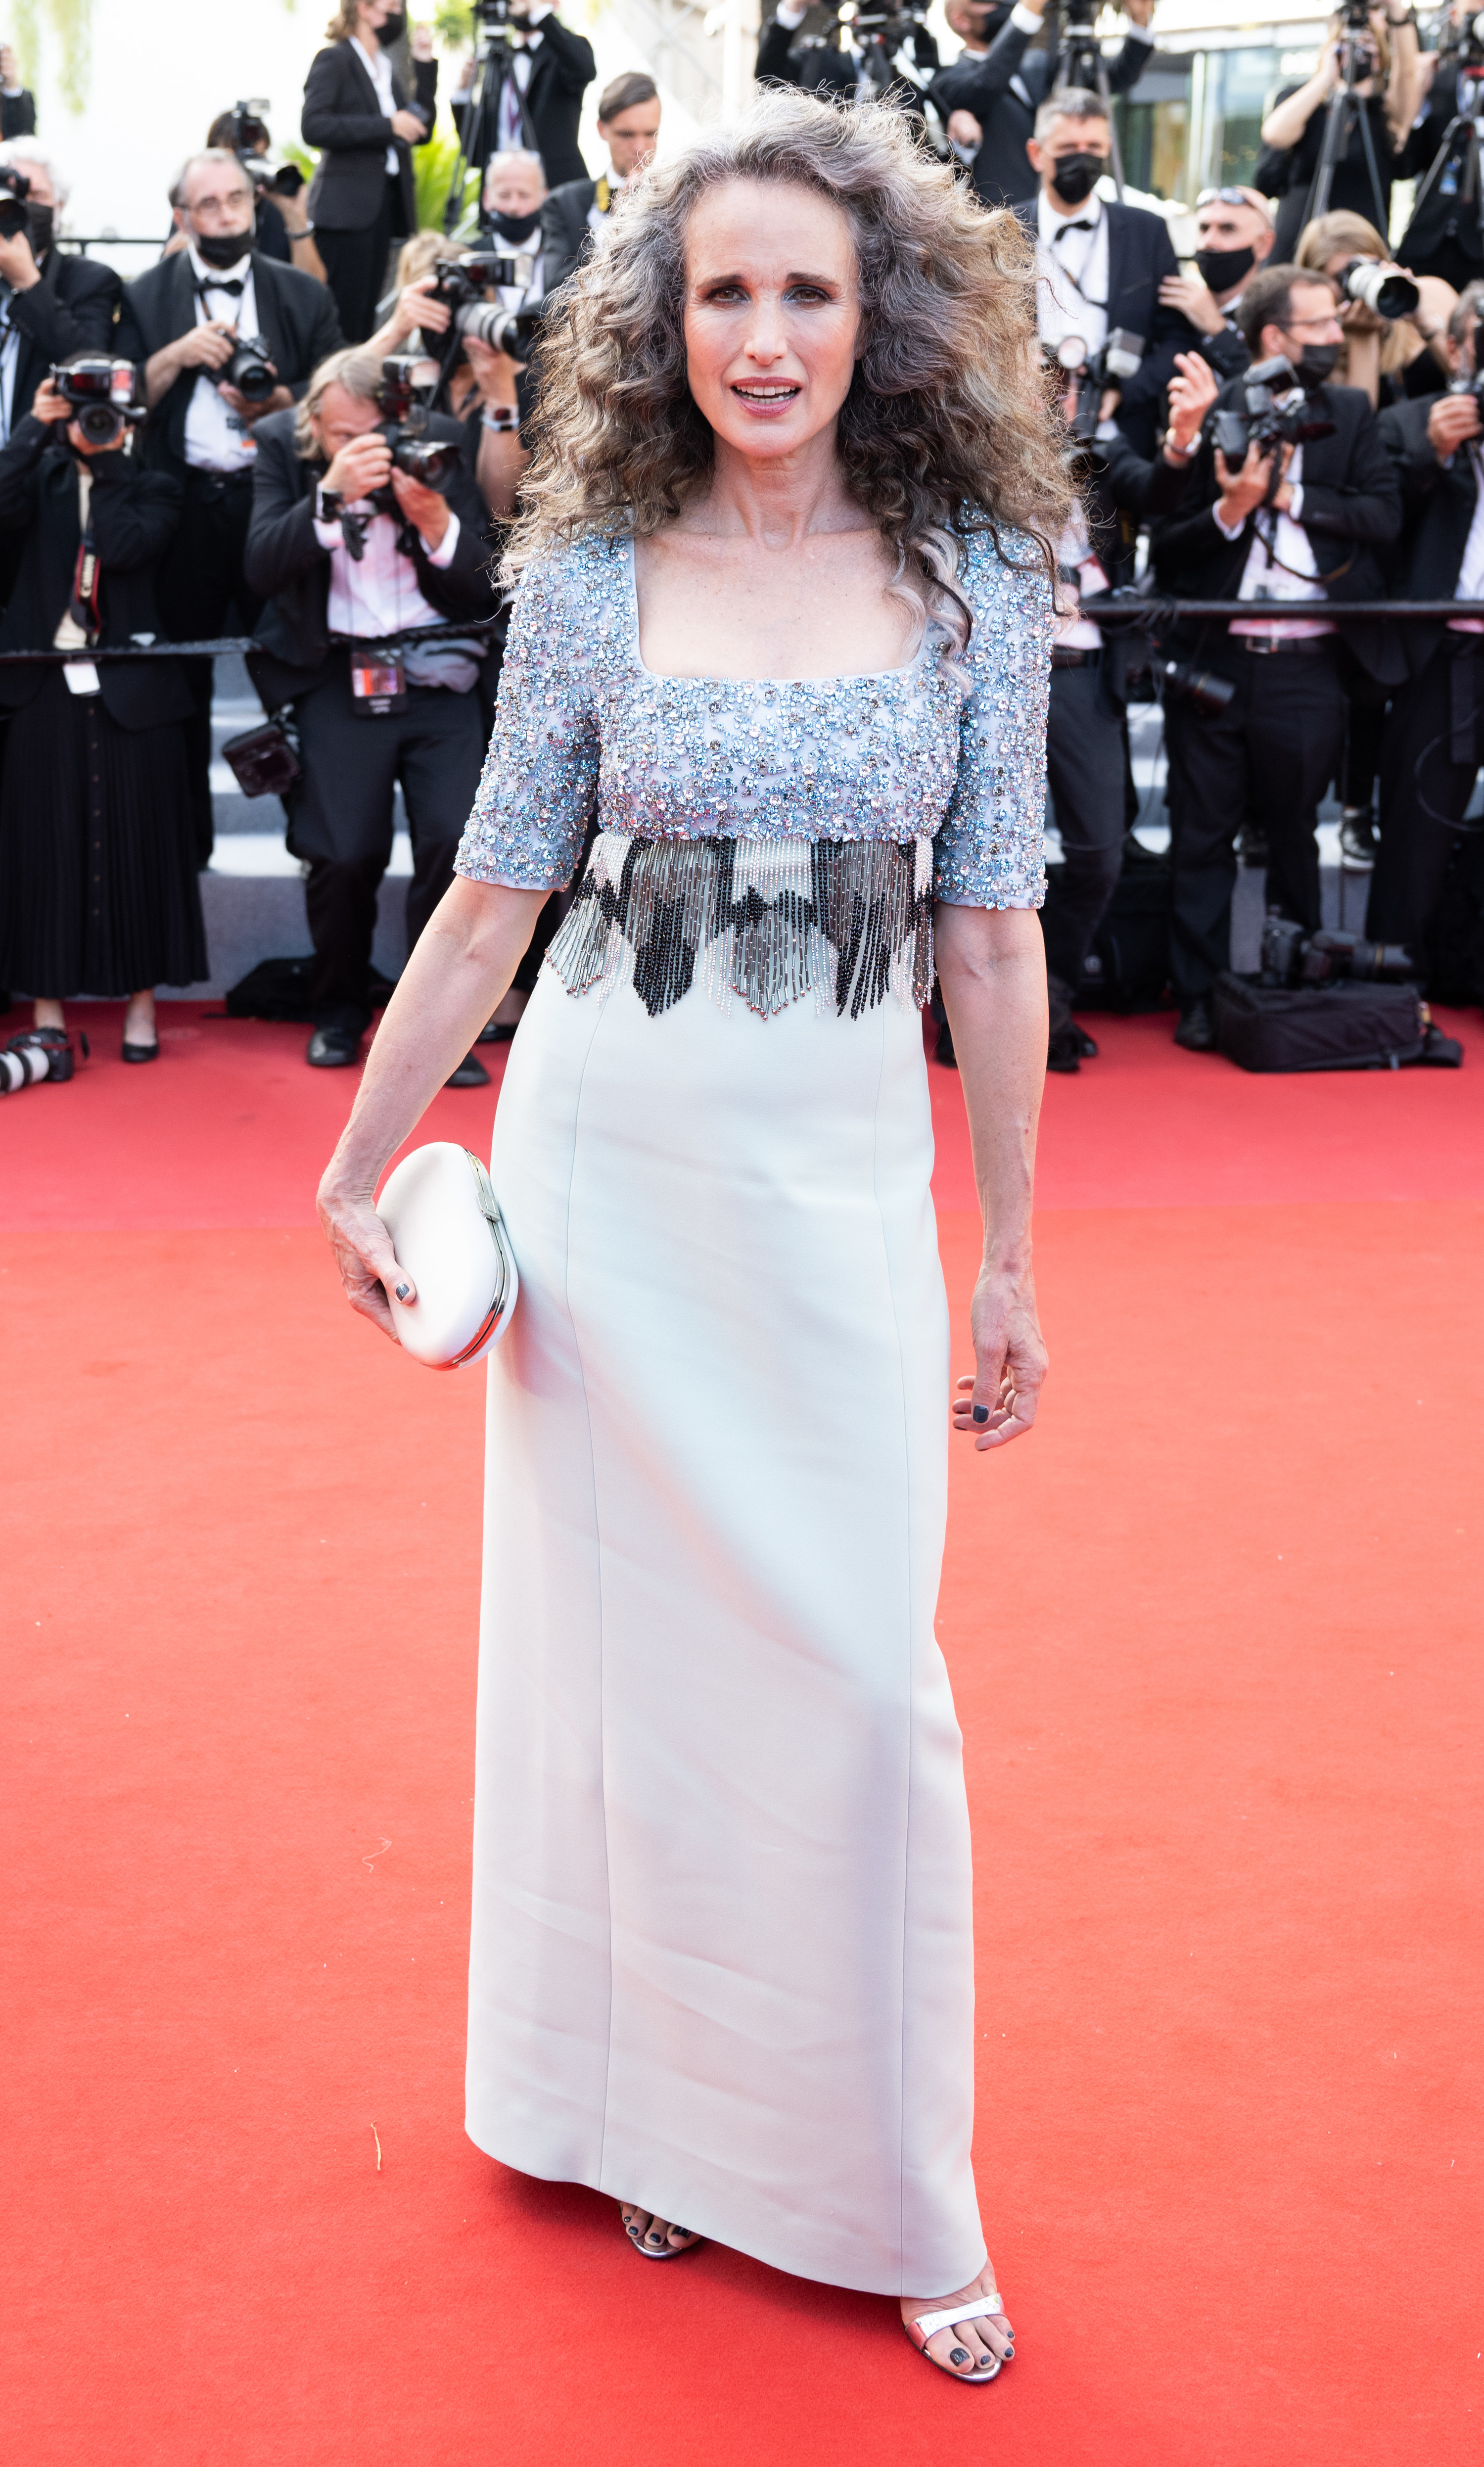 Andie McDowell at the Cannes Film Festival